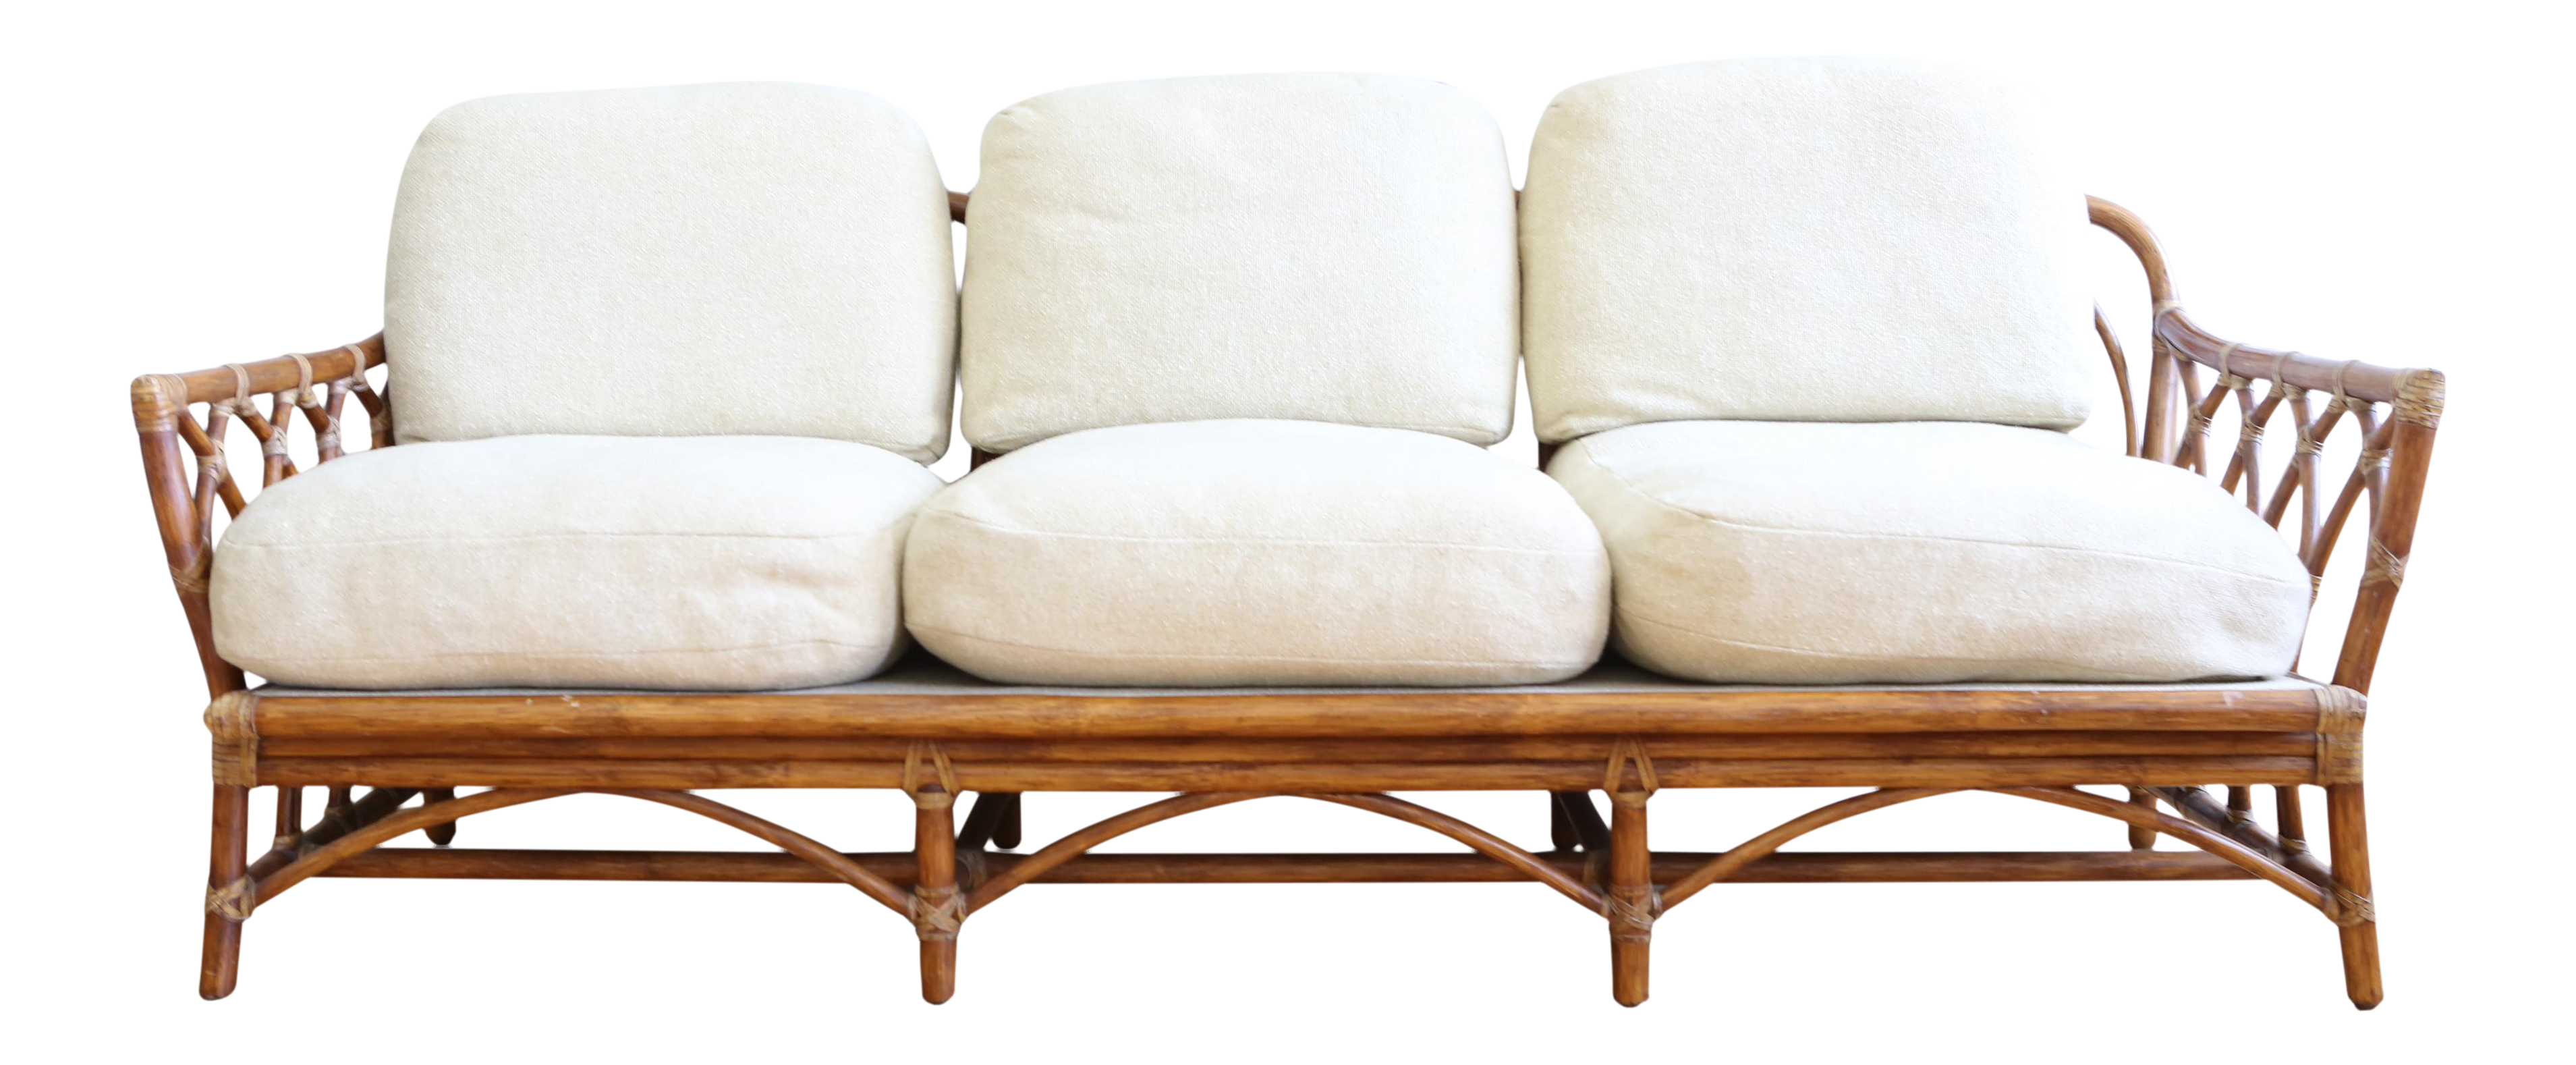 for furniture bamboo lovely witsolut com of and luxury vintage loveseat rattan